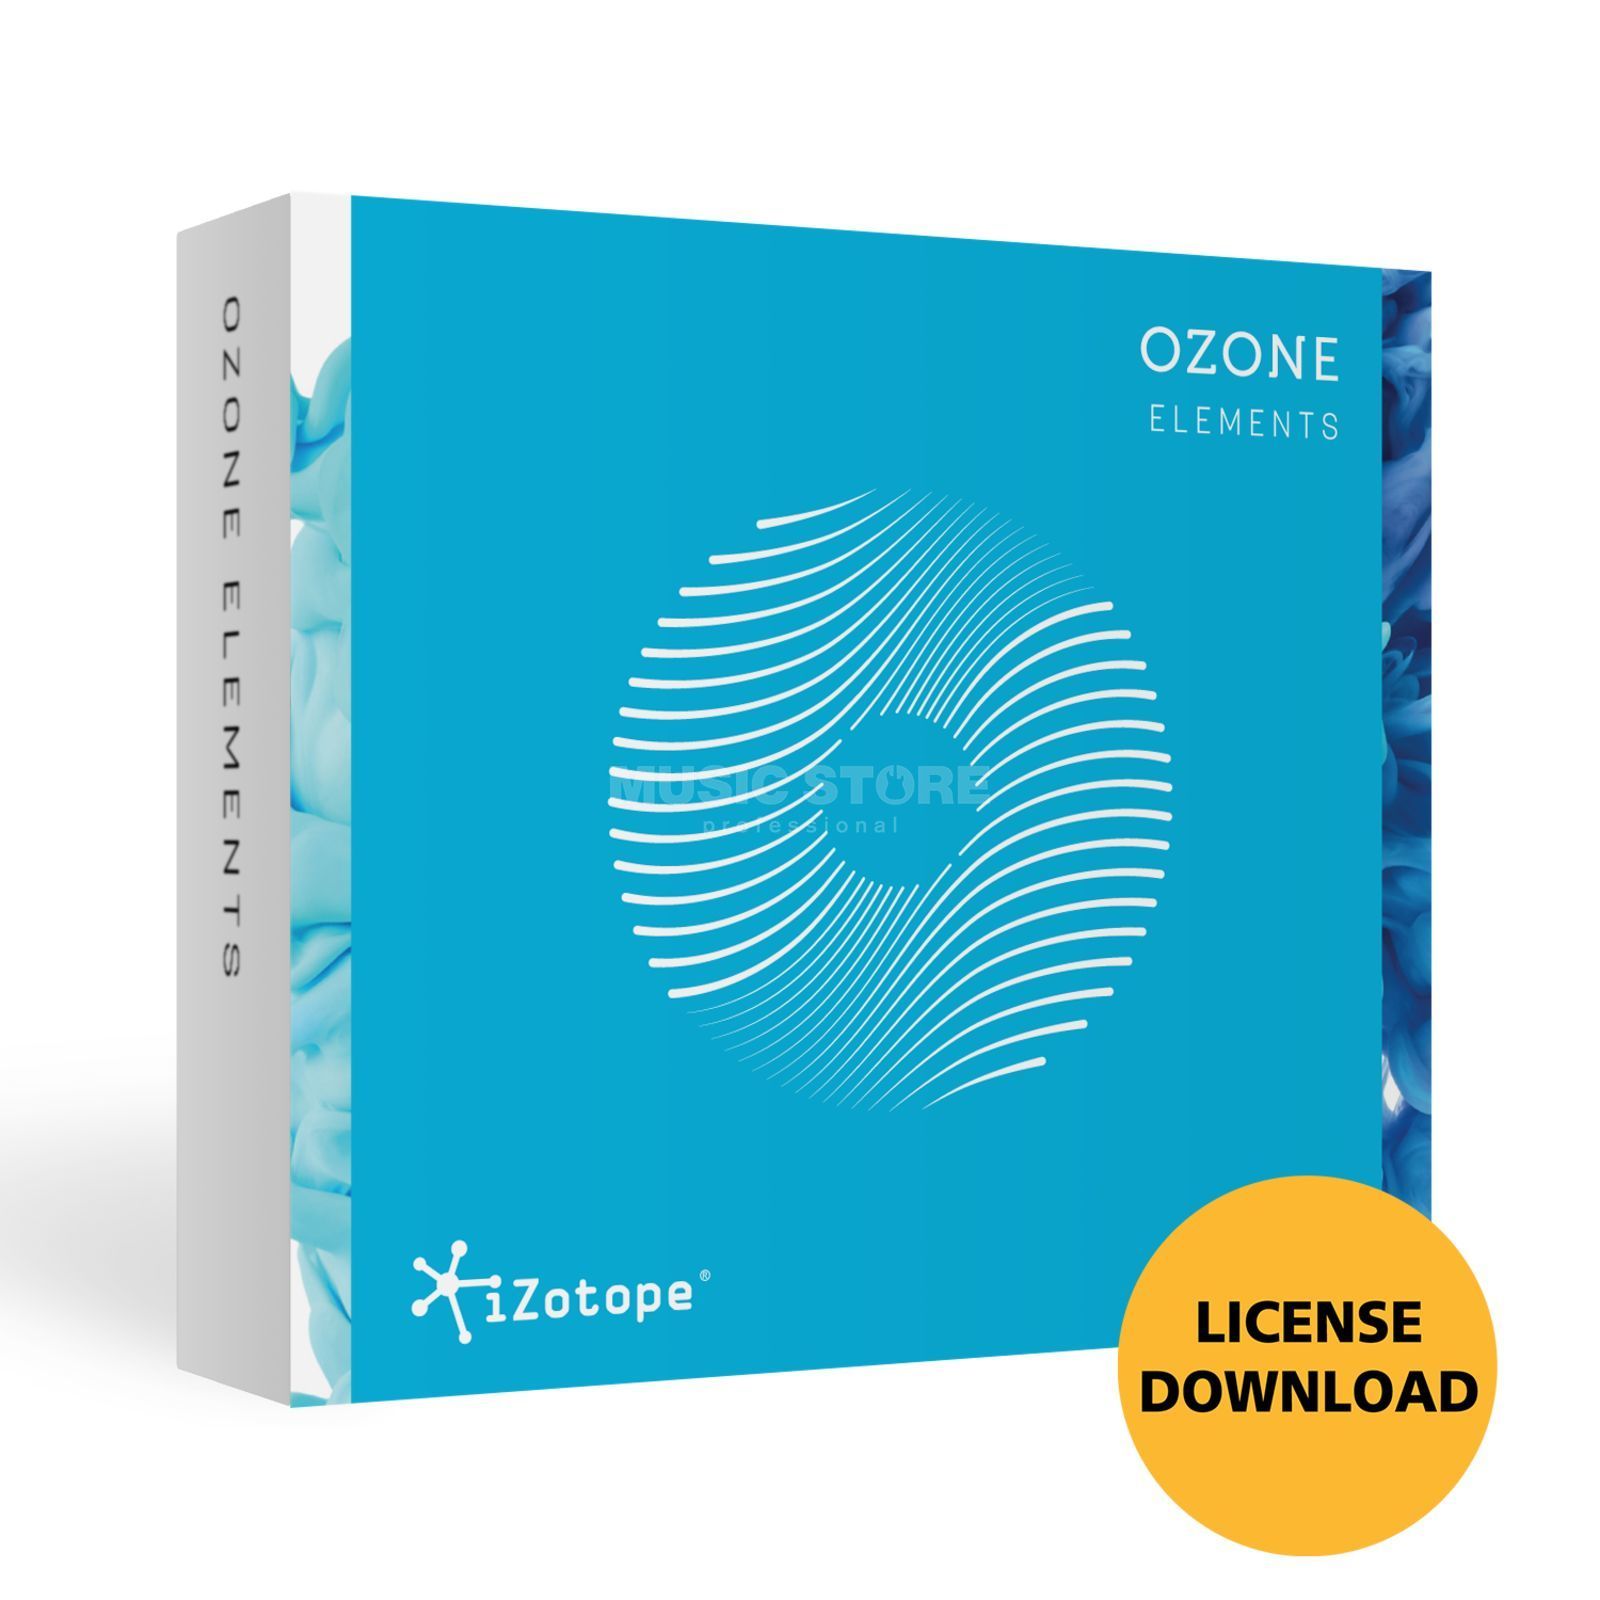 iZotope Ozone Elements License Code Product Image